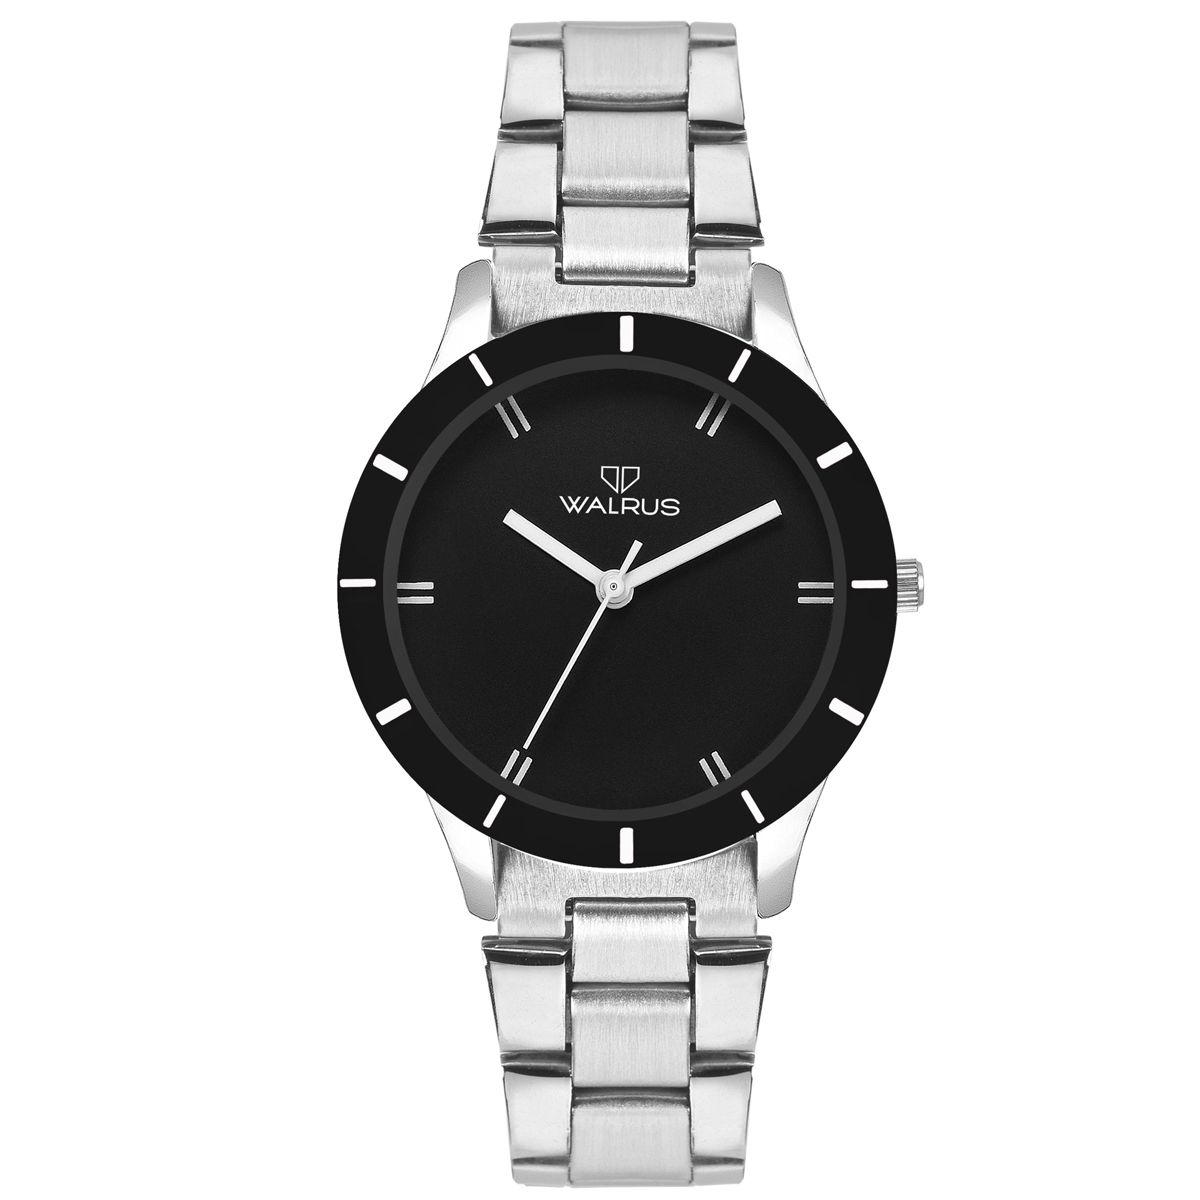 Walrus Eve Chain Black Color Analog Women Watch -WWW-Eve -CH-020707